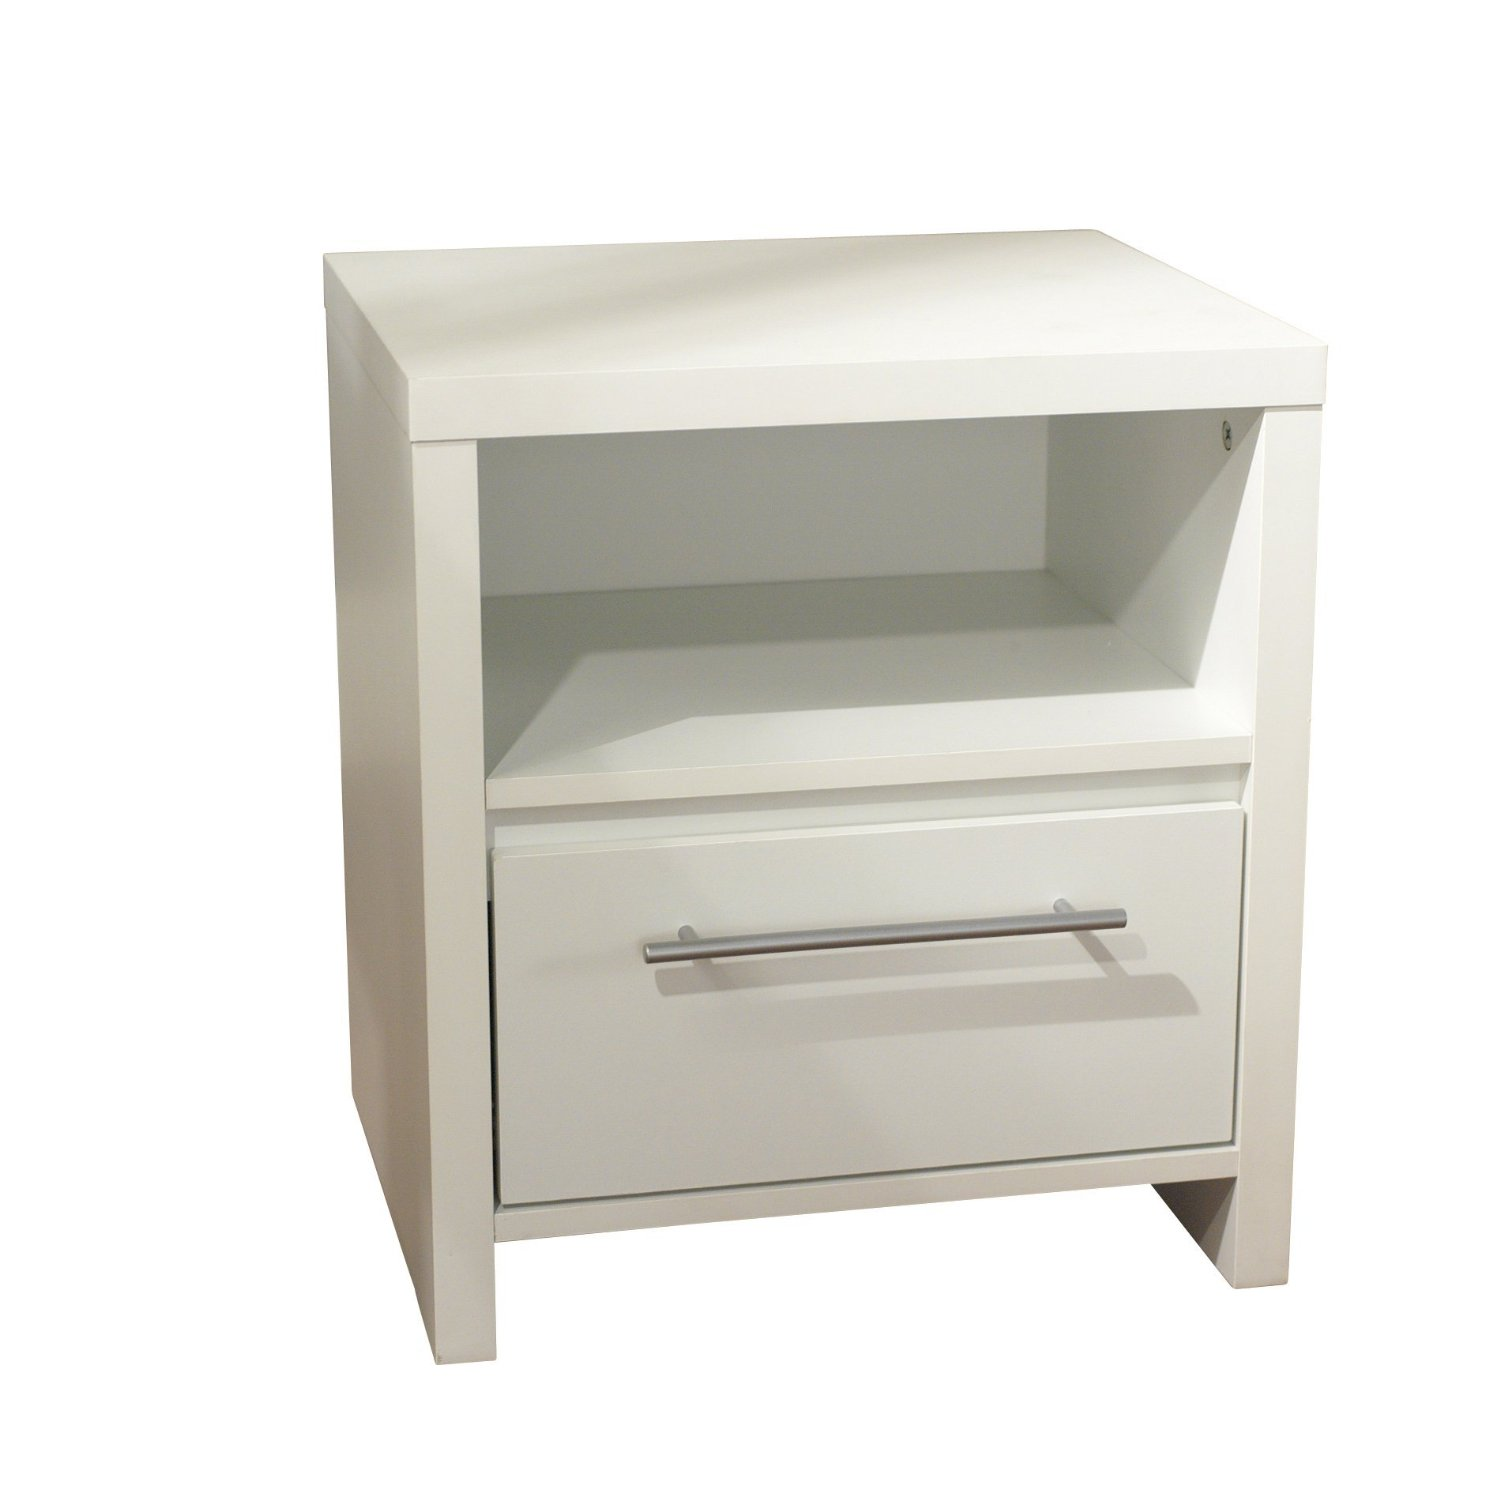 Target Marketing Systems Contemporary Nightstand with 1 Open Shelf and 1 Drawer, White